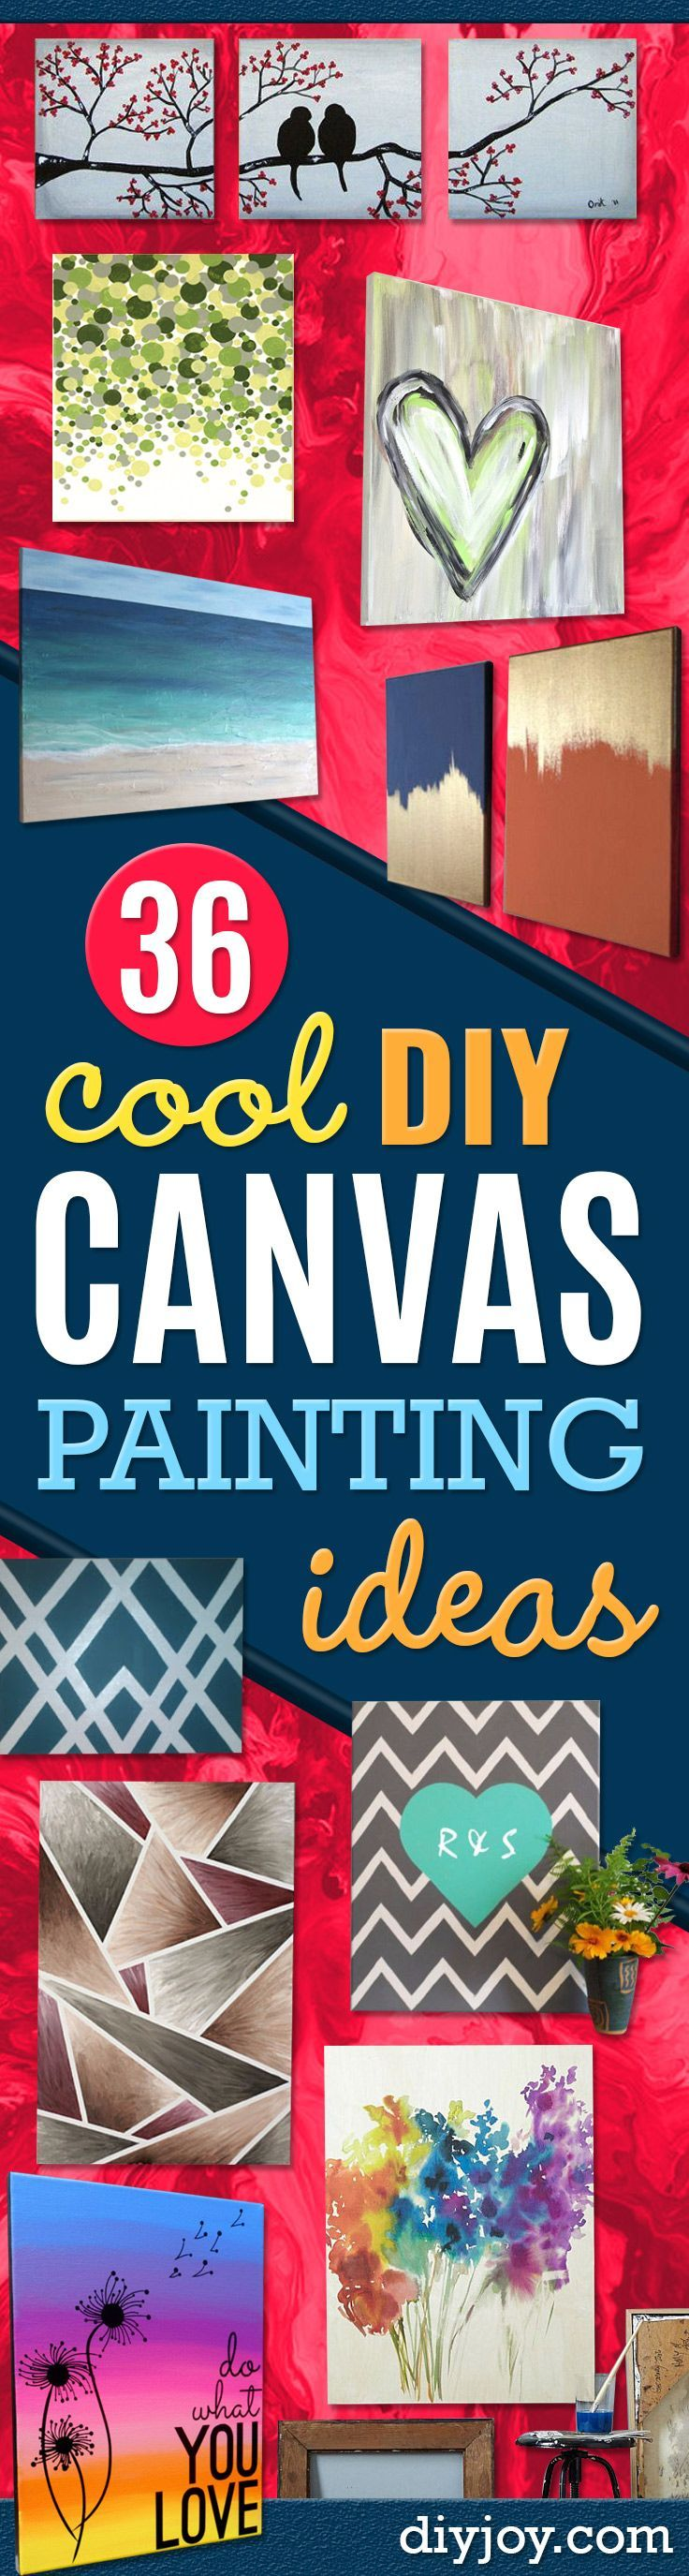 DIY Canvas Painting Ideas – Cool and Easy Wall Art Ideas You Can Make On A Budget – Creative Arts and Crafts Ideas for Adults and